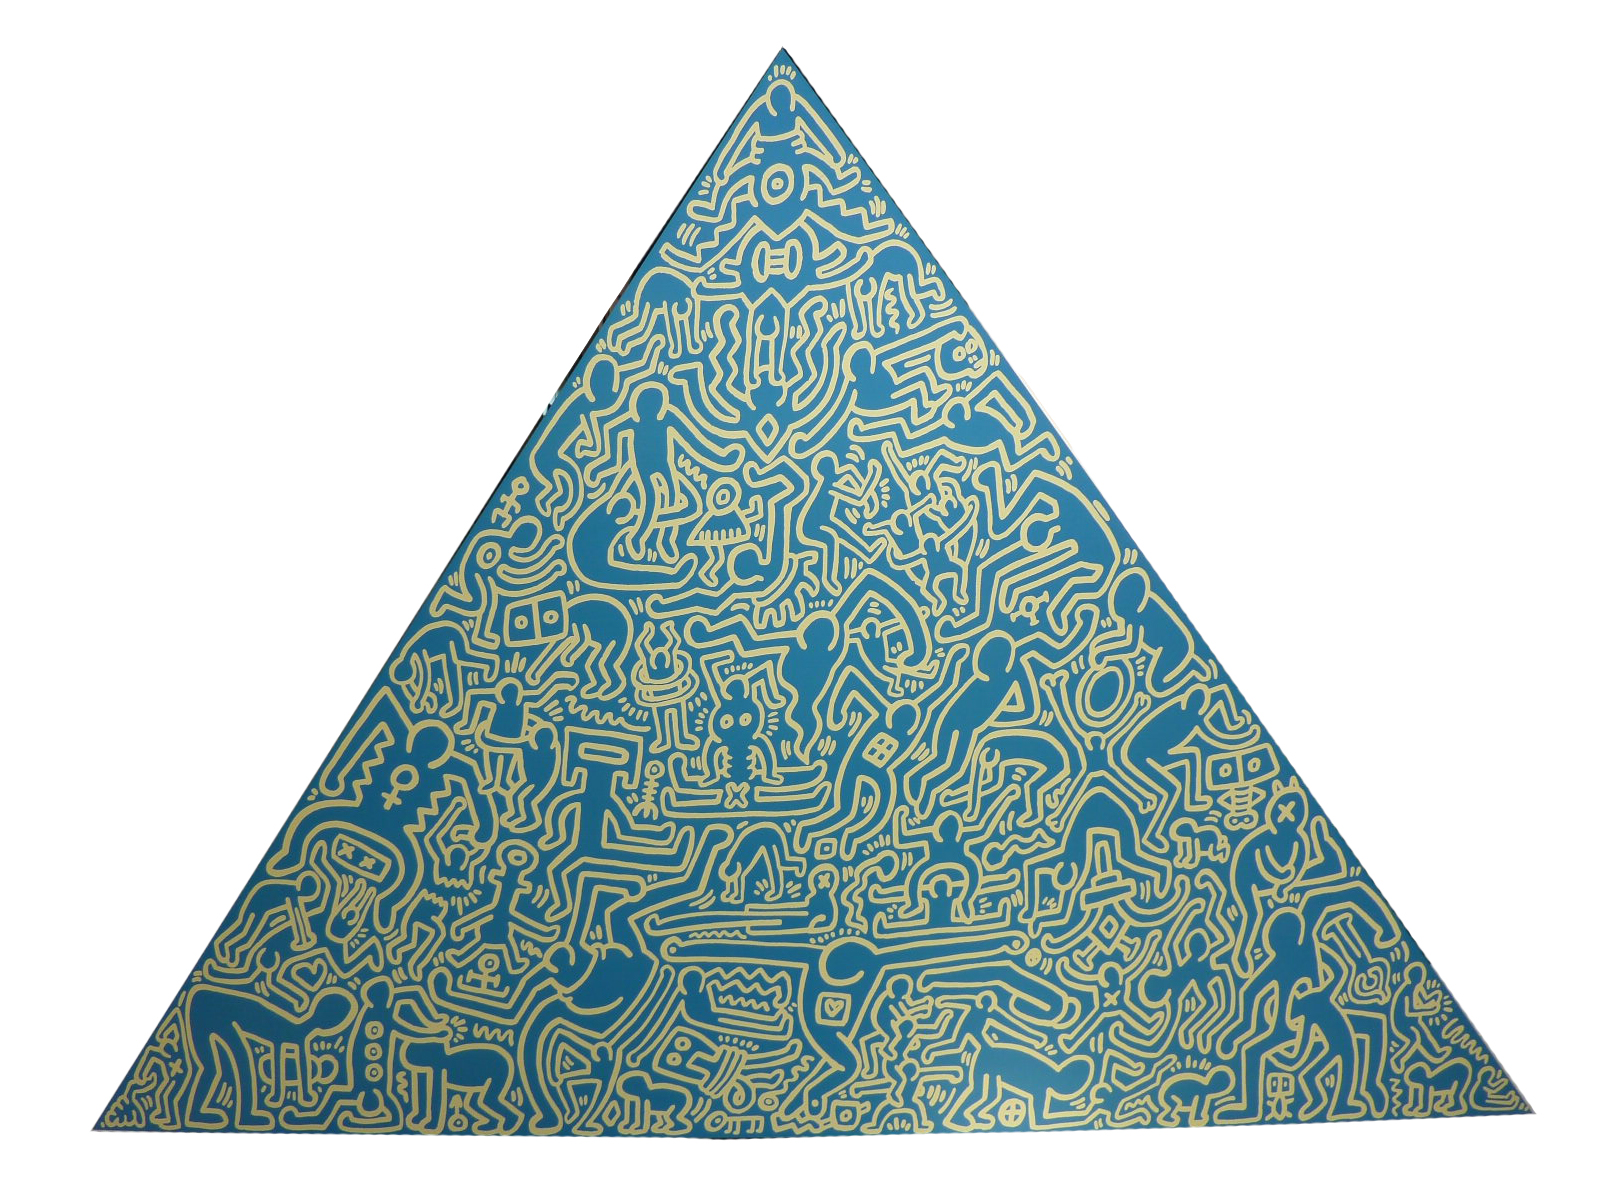 Screenprint on anodized aluminum called Pyramid (blue) by Keith Haring